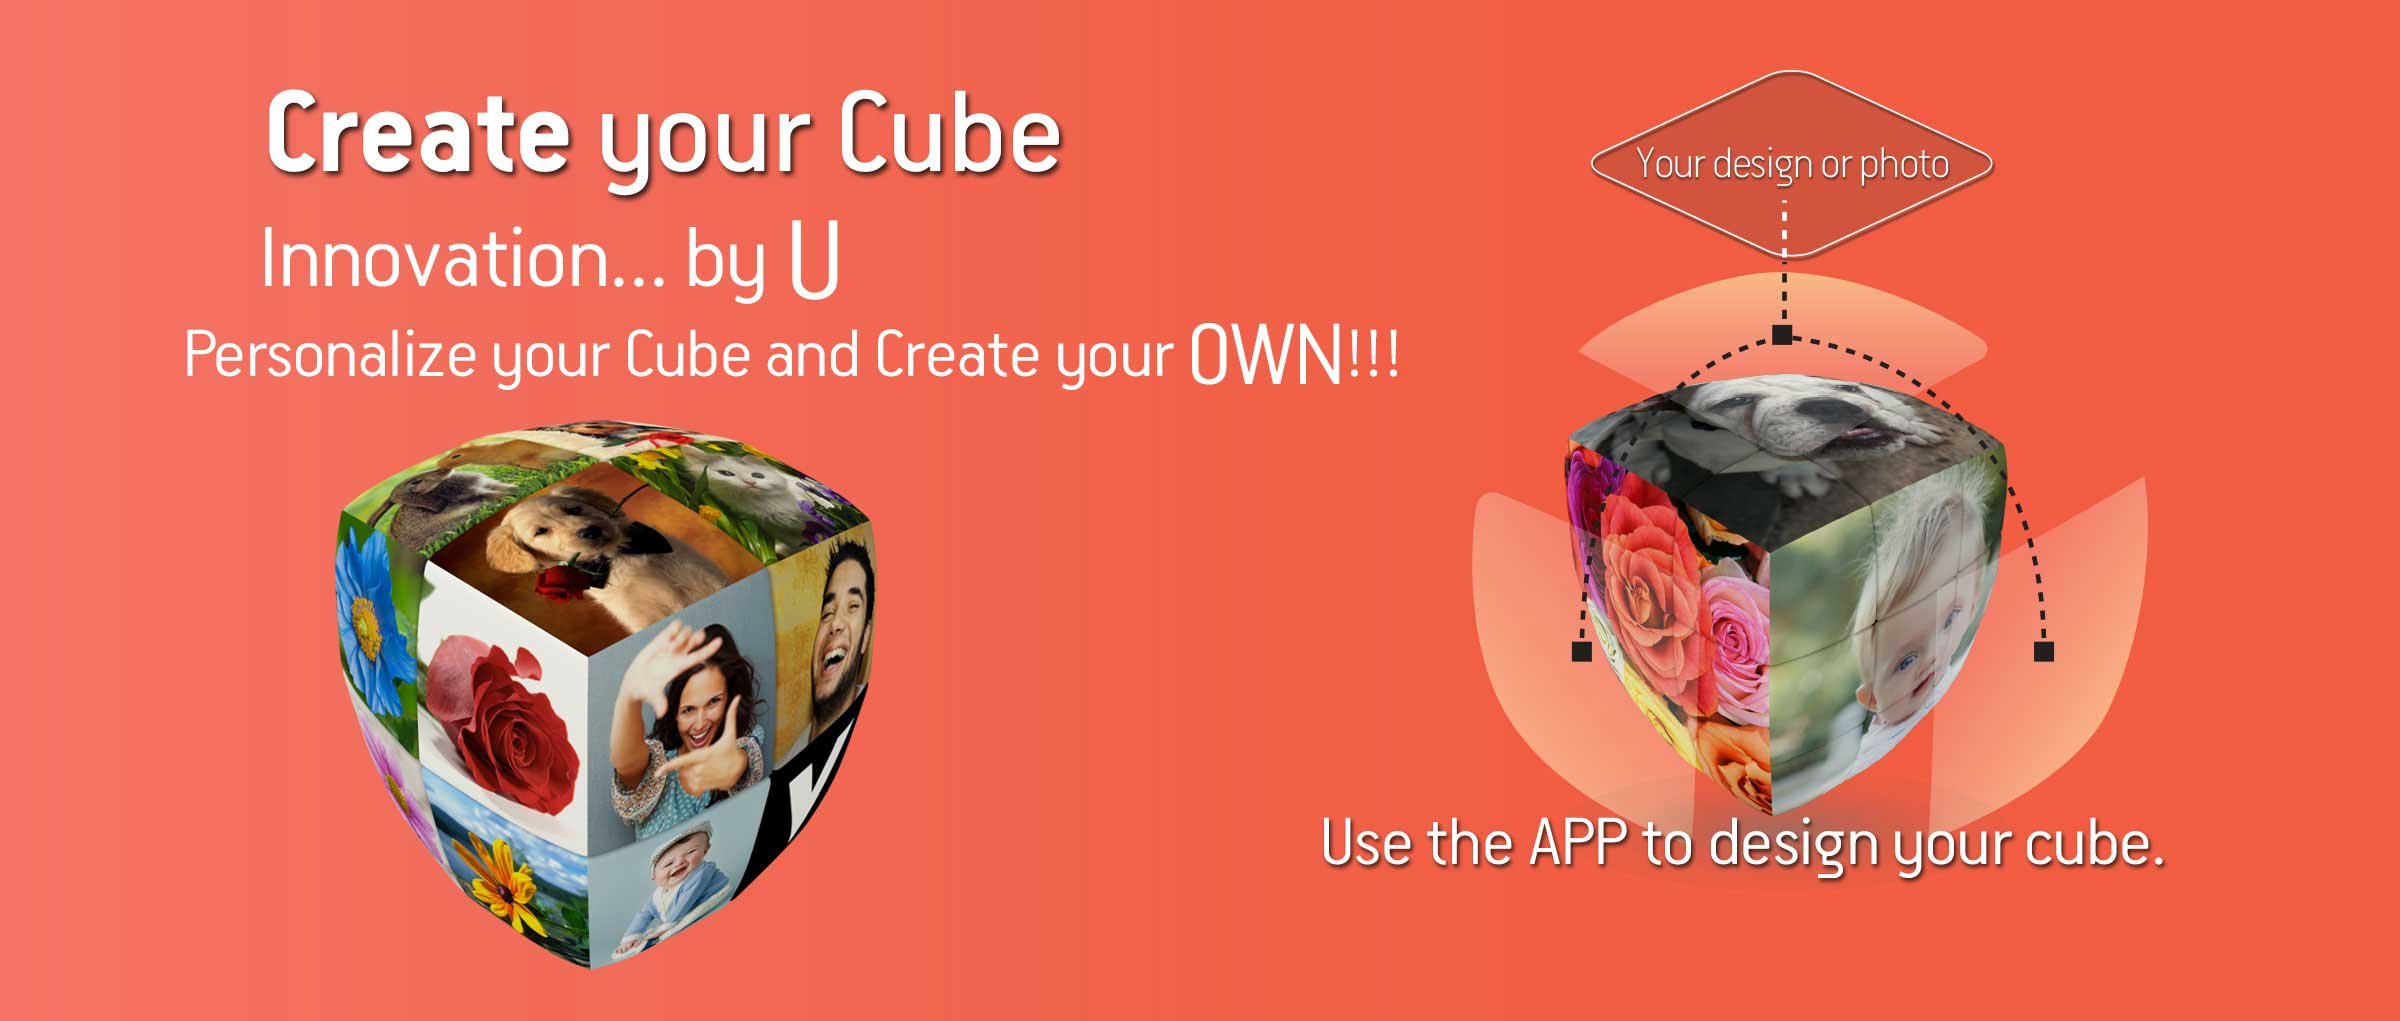 V-CUBE™ - Create Your Cube